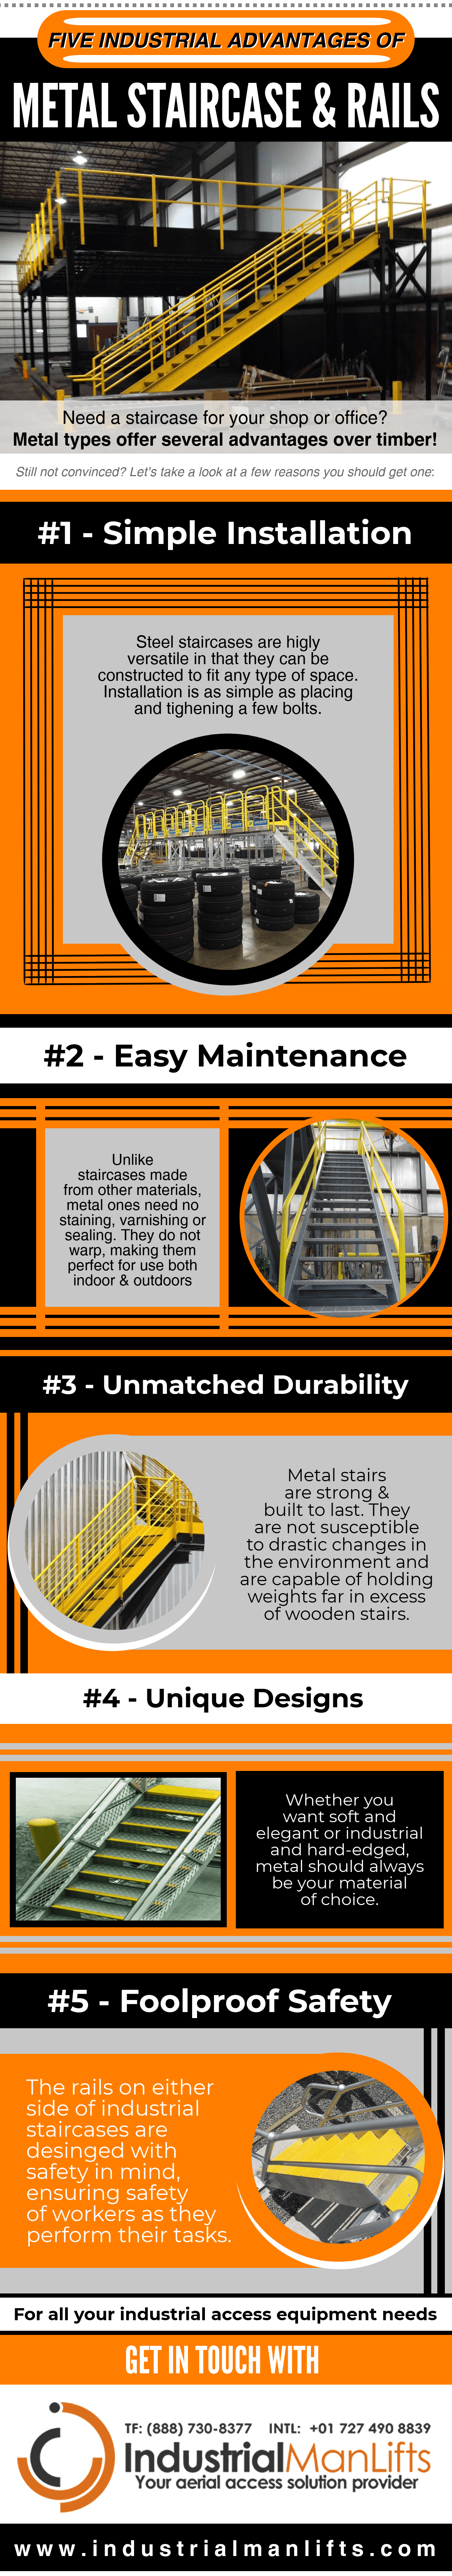 Five Industrial Advantages Of Metal Staircase & Rails [ Infographic ]